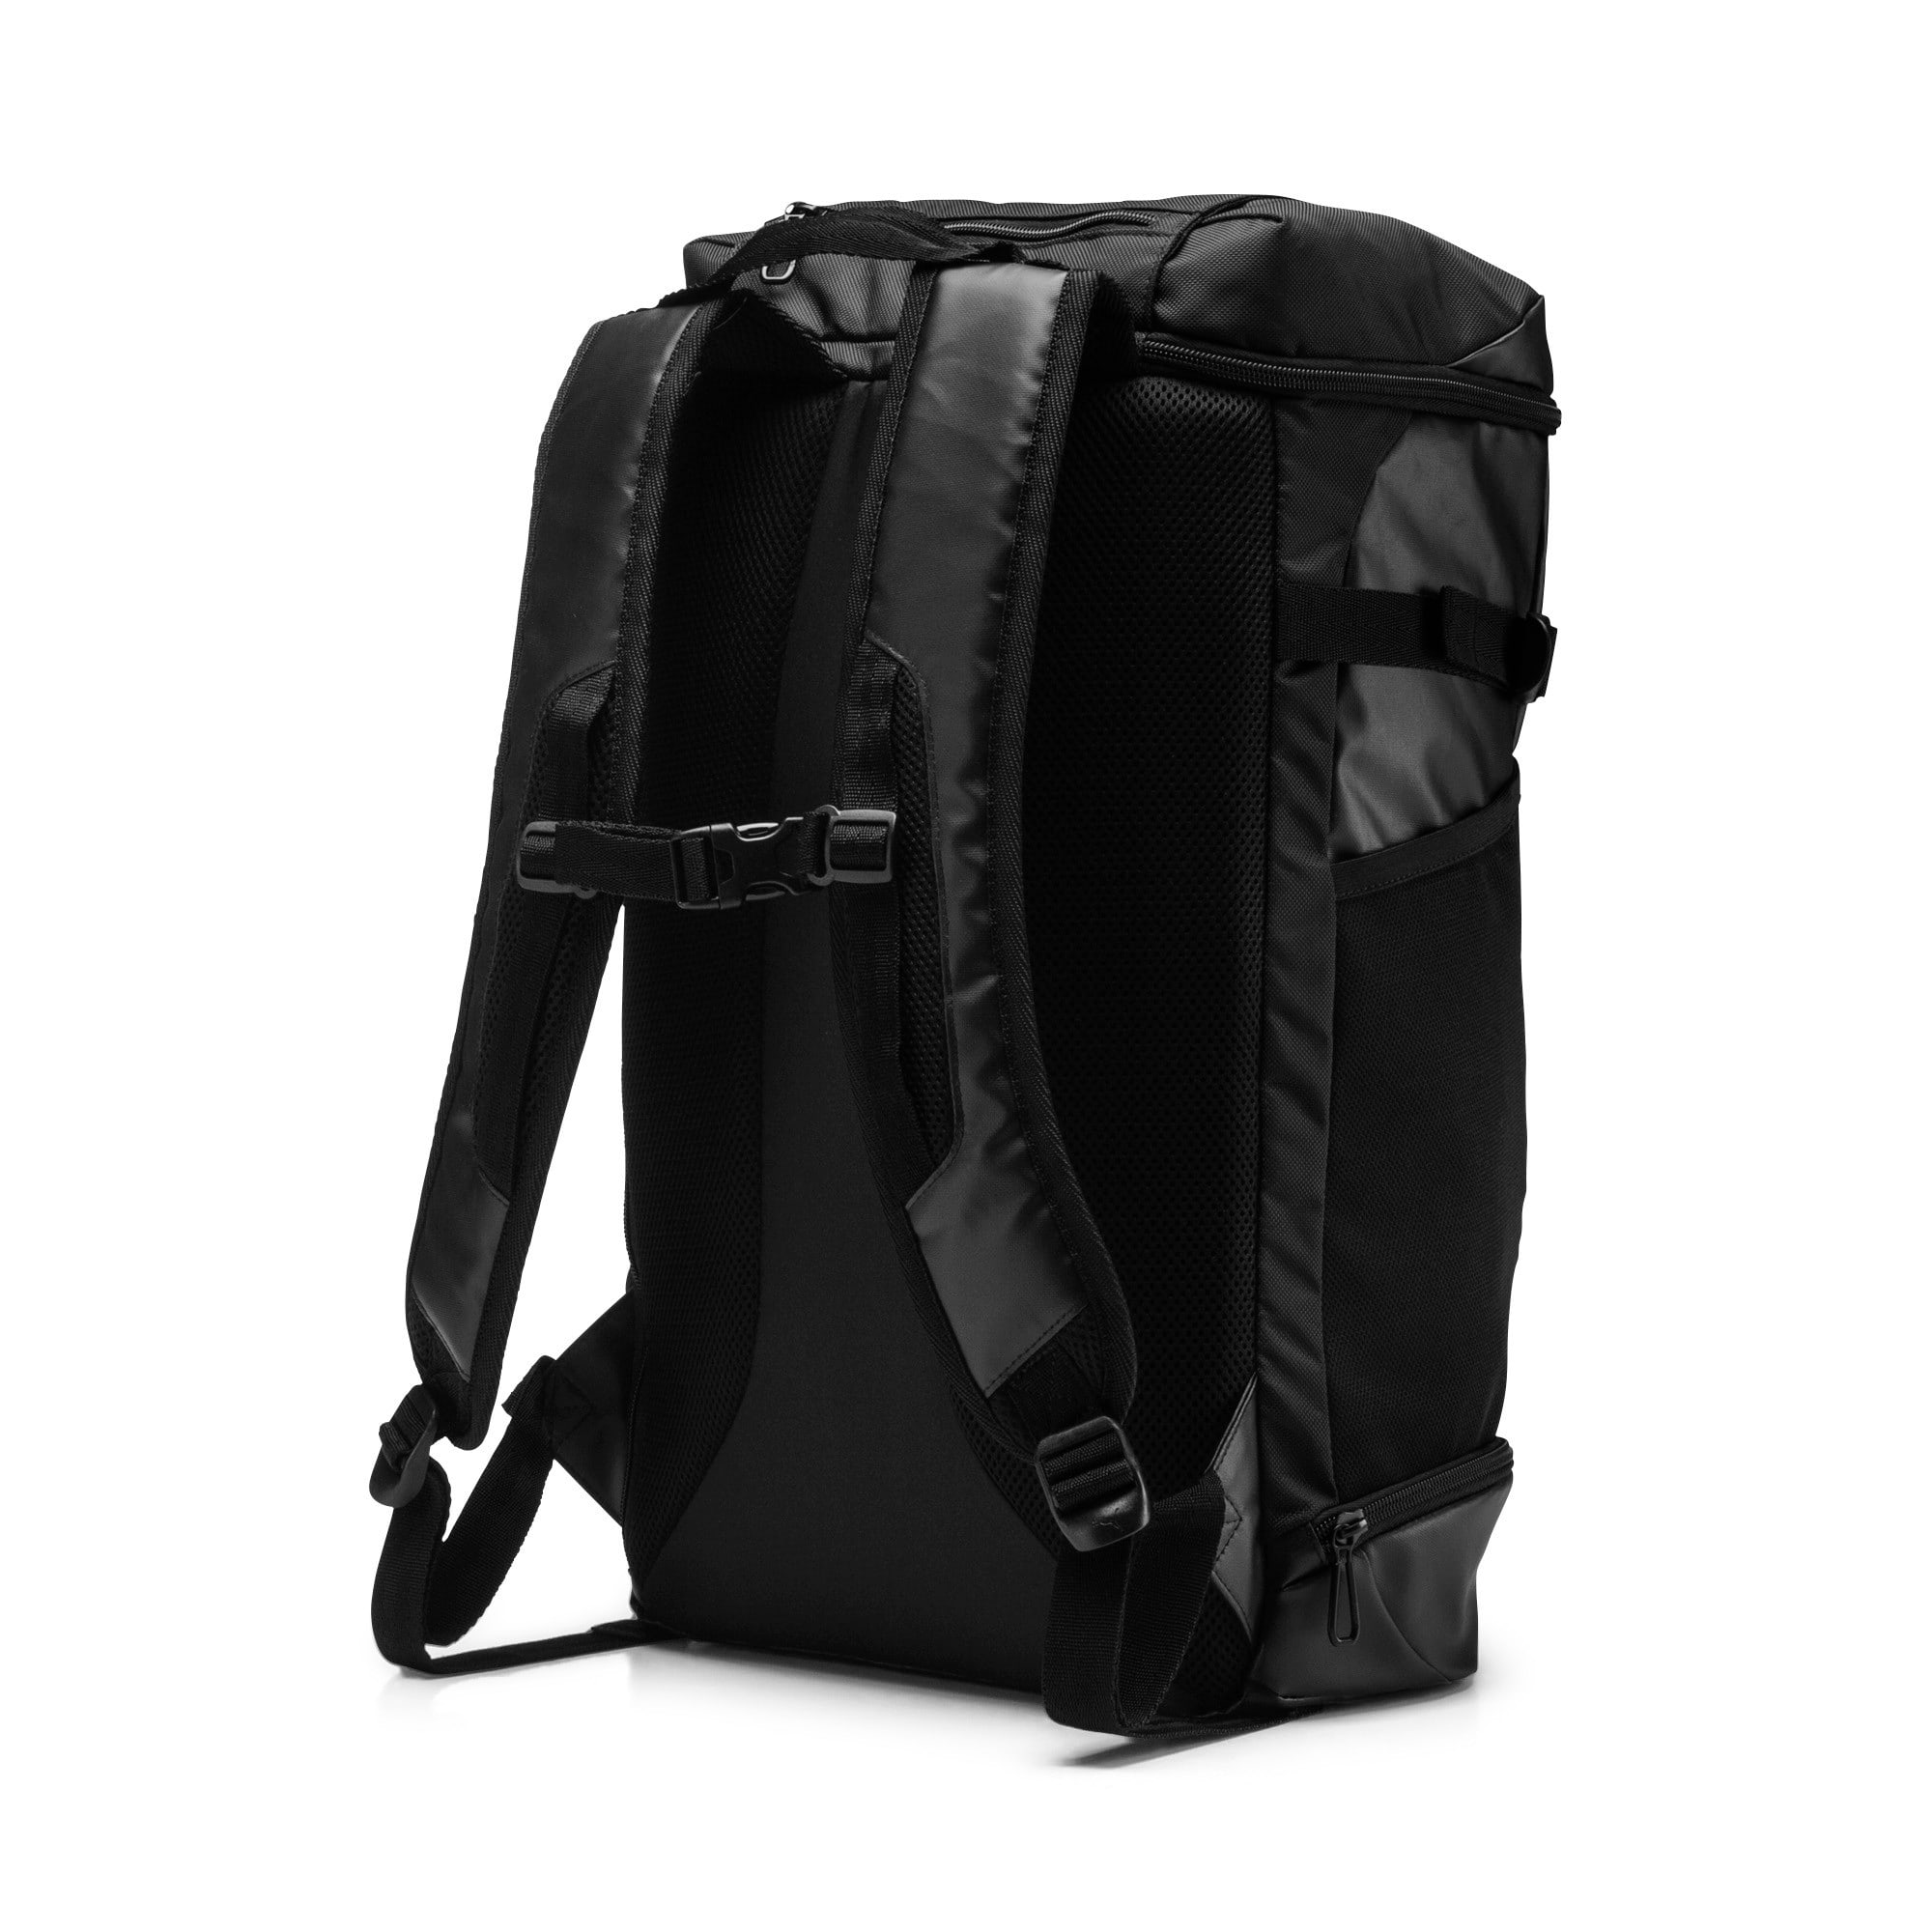 Thumbnail 2 of Energy Premium Backpack, Puma Black, medium-IND